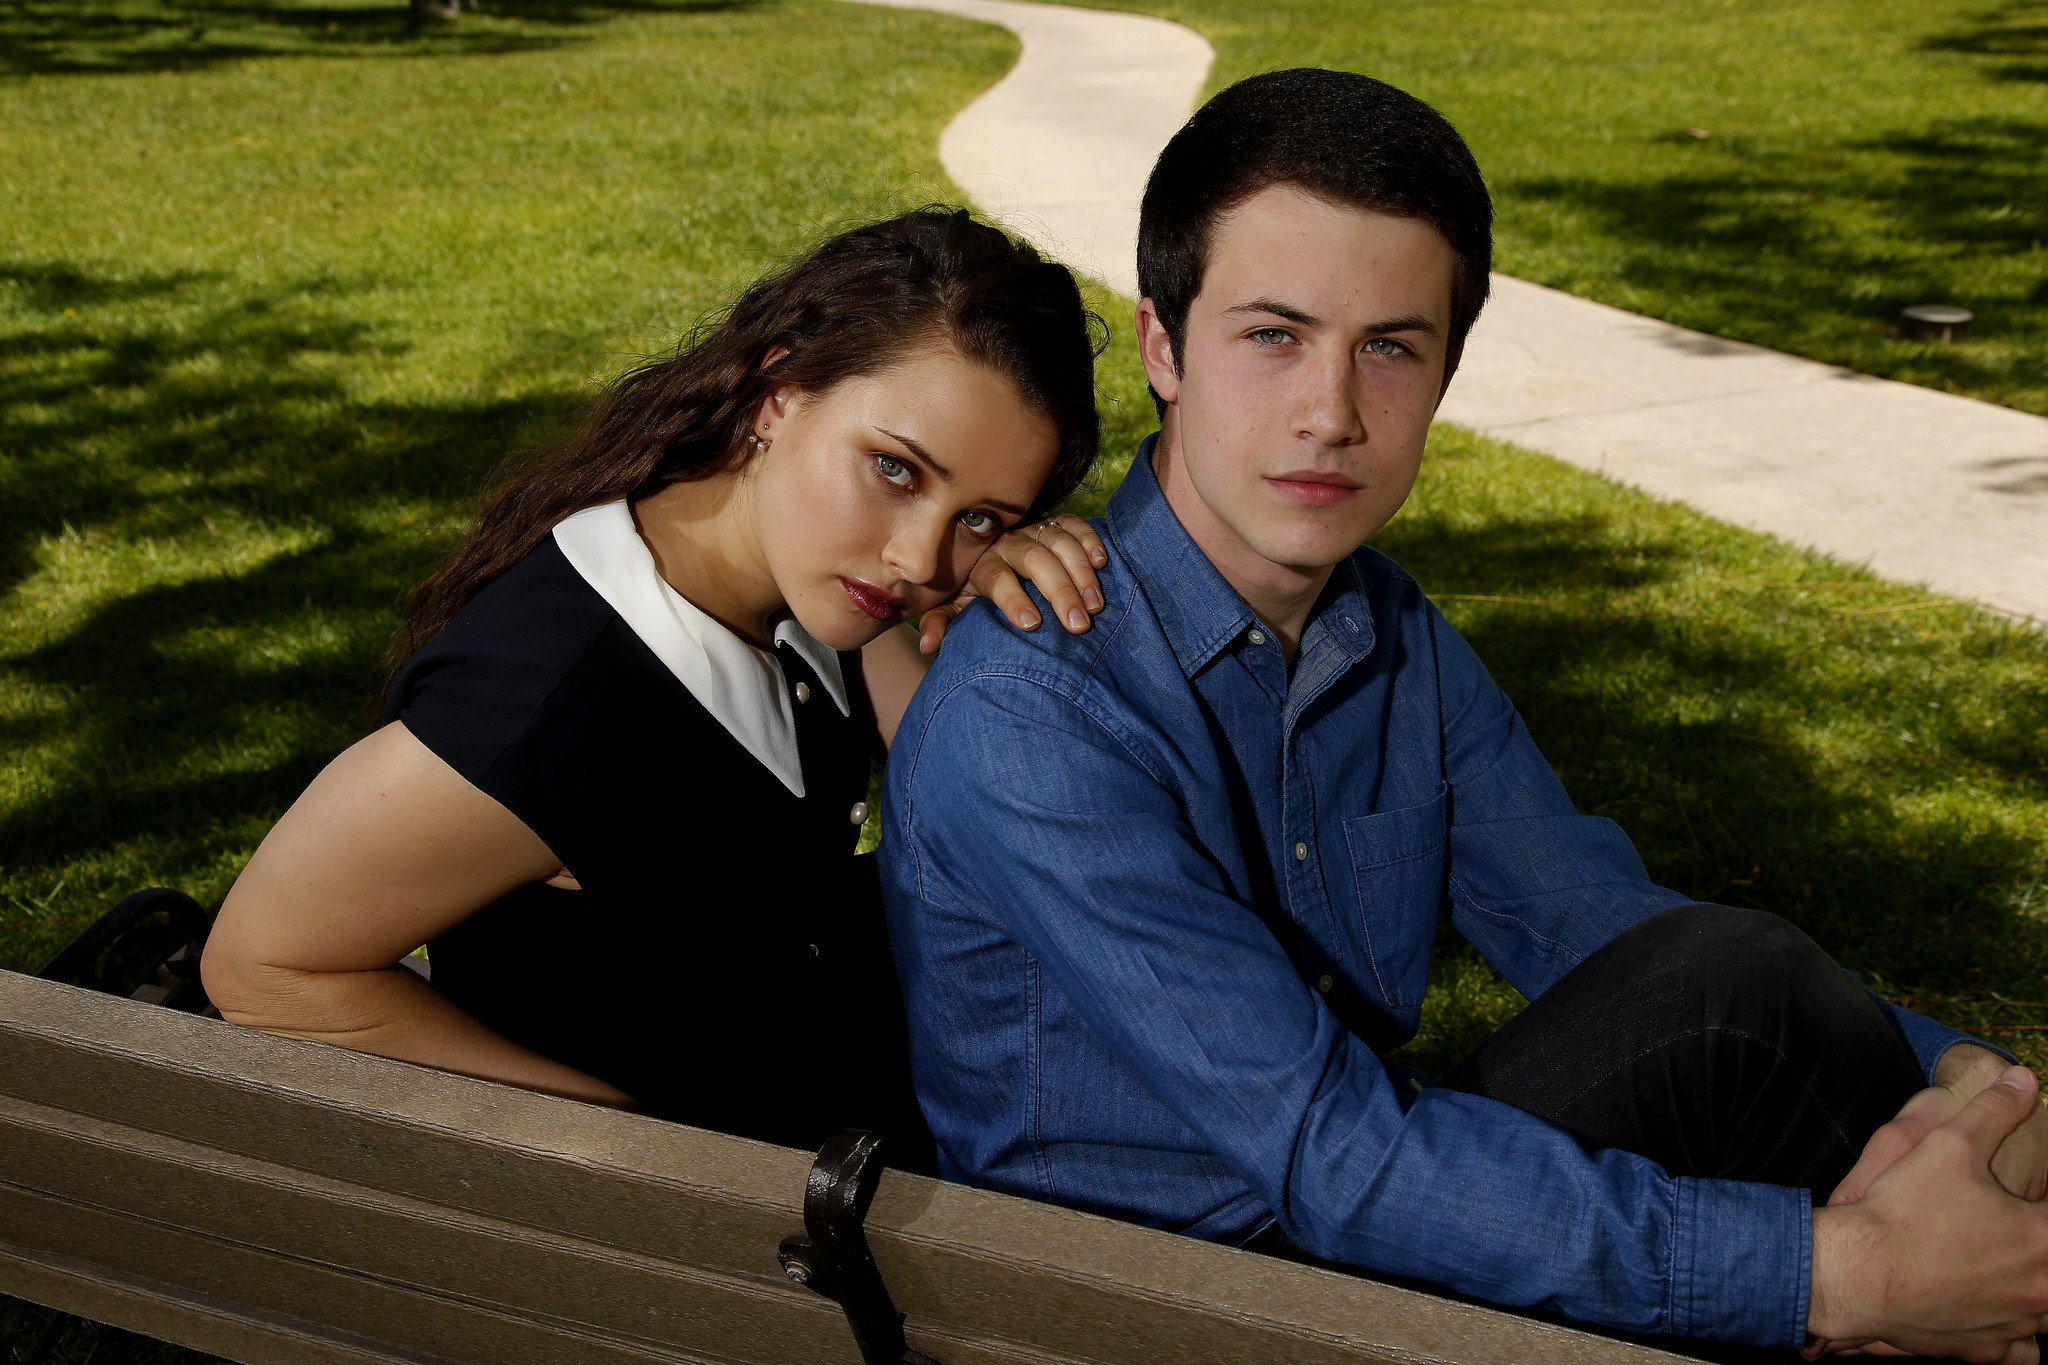 HOLLYWOOD, CA., APRIL 27, 2017--Lead actors, Dylan Minnette and Katherine Langford, star in Netflix'